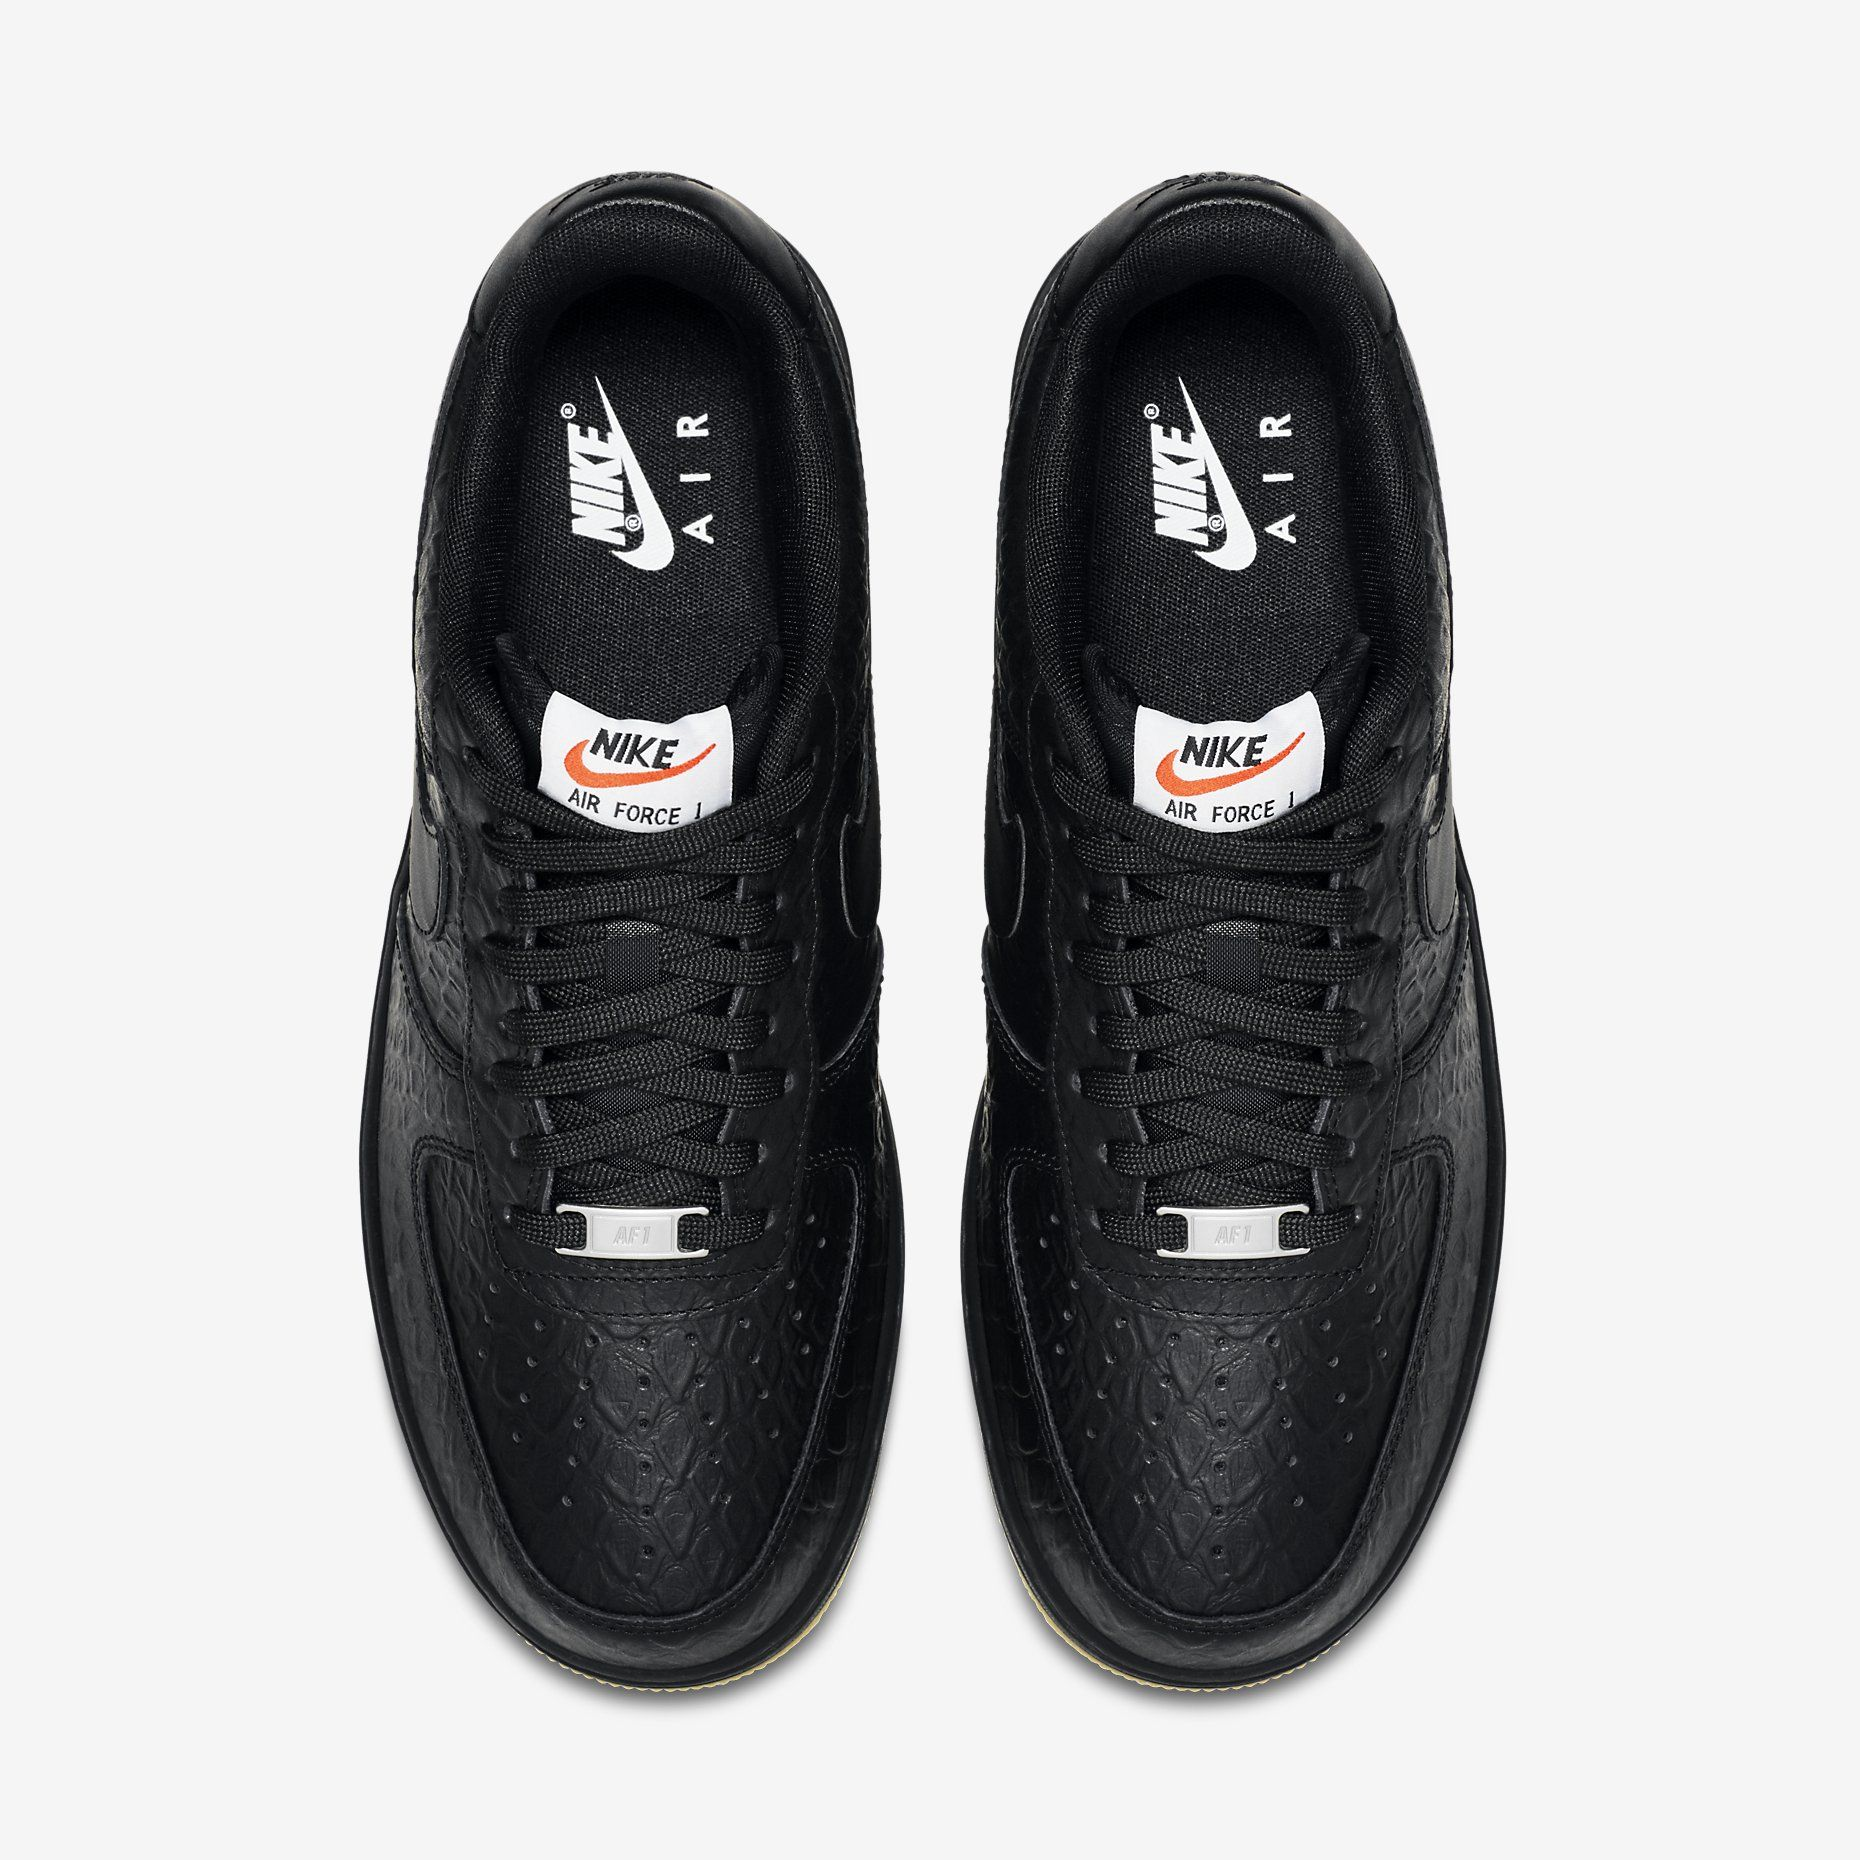 Air Hombres 7966e 1 F6636 Lv8 Nike Force Italy rxdCeWQBo